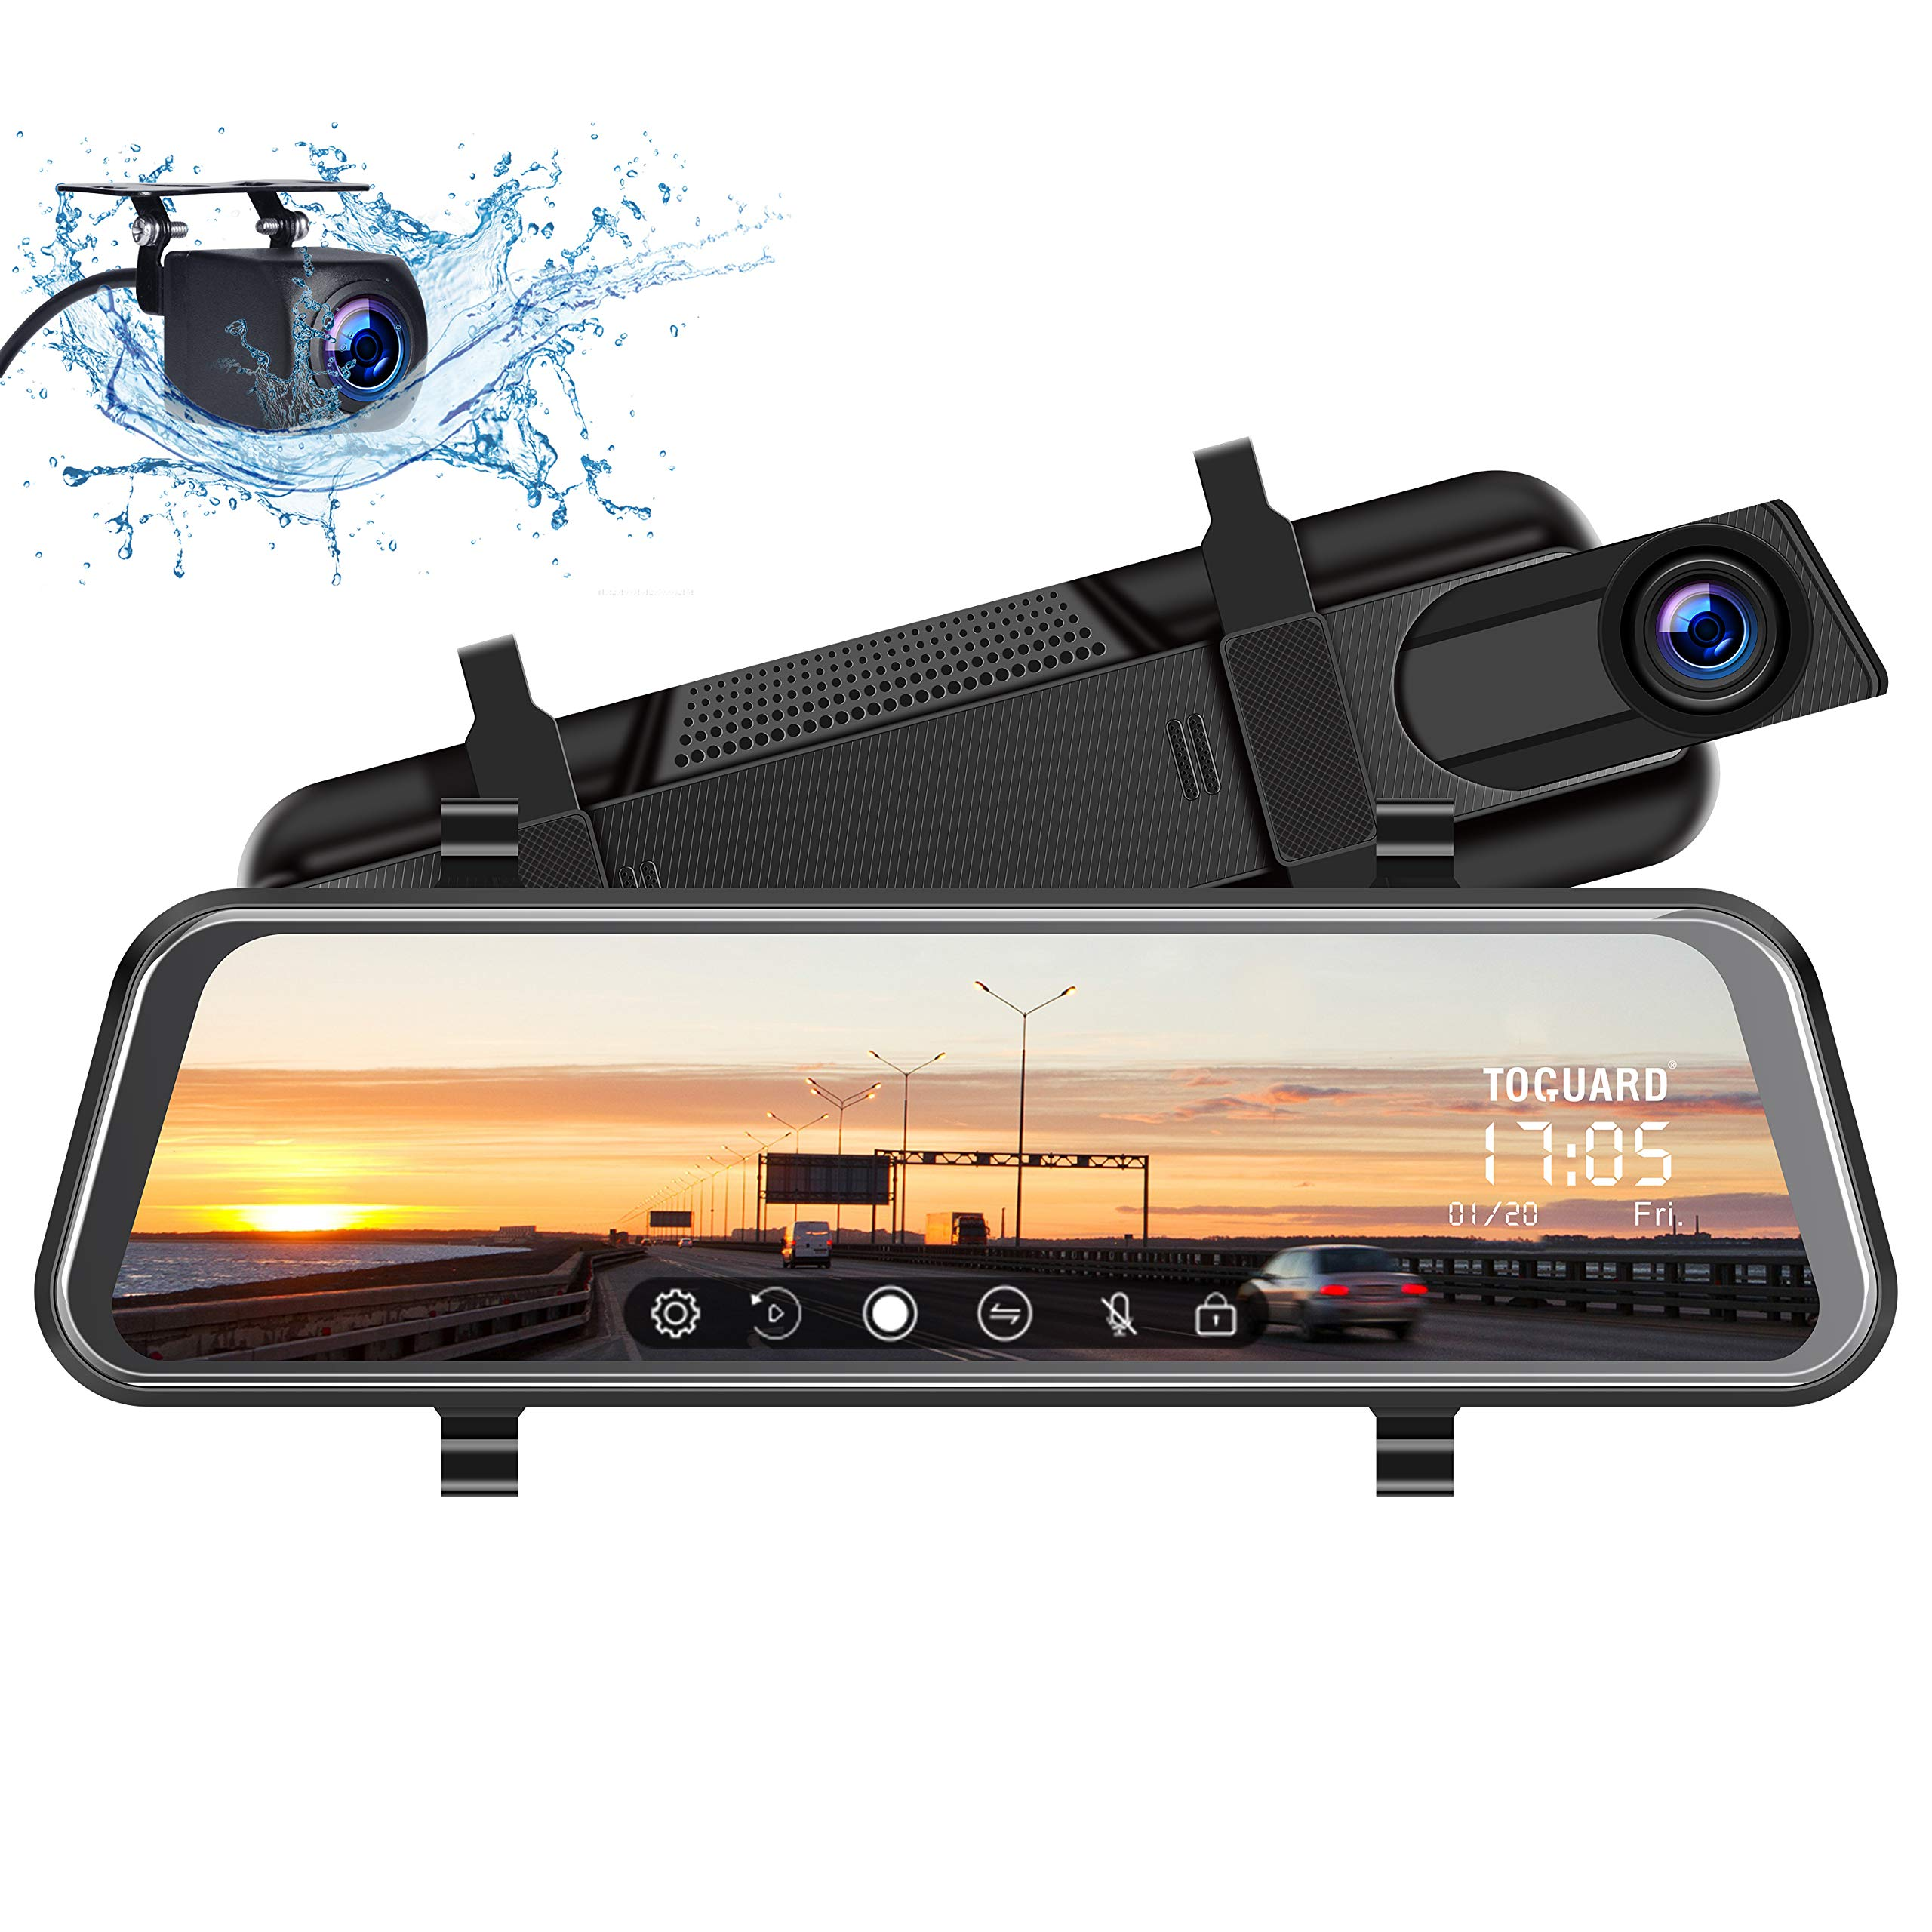 TOGUARD Backup Camera 10'' Mirror Dash Cam, Dash Cam Front and Rear Full Touch Screen Video Streaming Rear View Mirror Camera,Night Vision Waterproof 1080P Rear Camera by TOGUARD